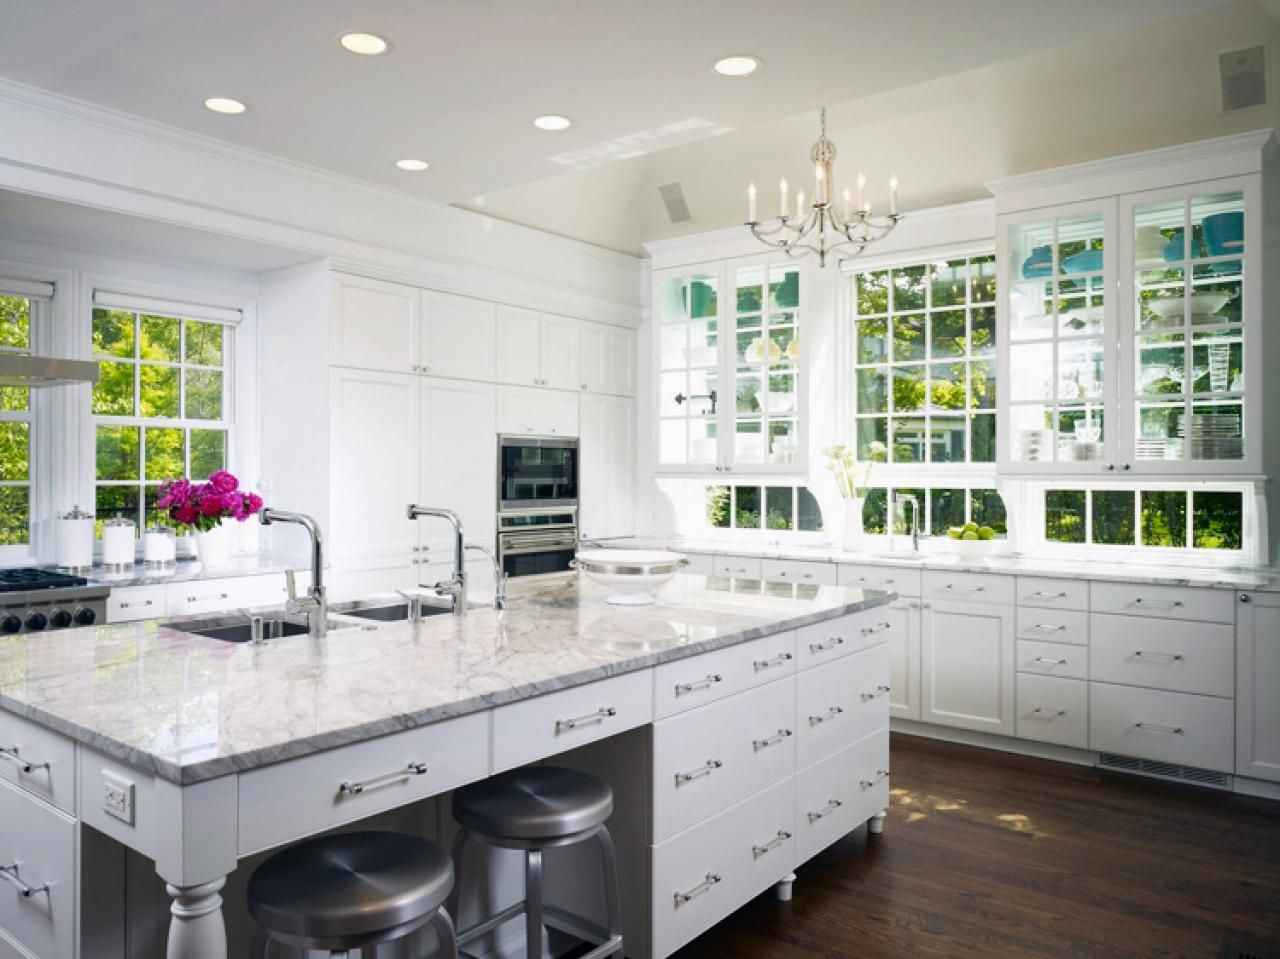 Window treatment ideas for above kitchen sink  contemporary kitchen window treatments  hgtv pictures  on my